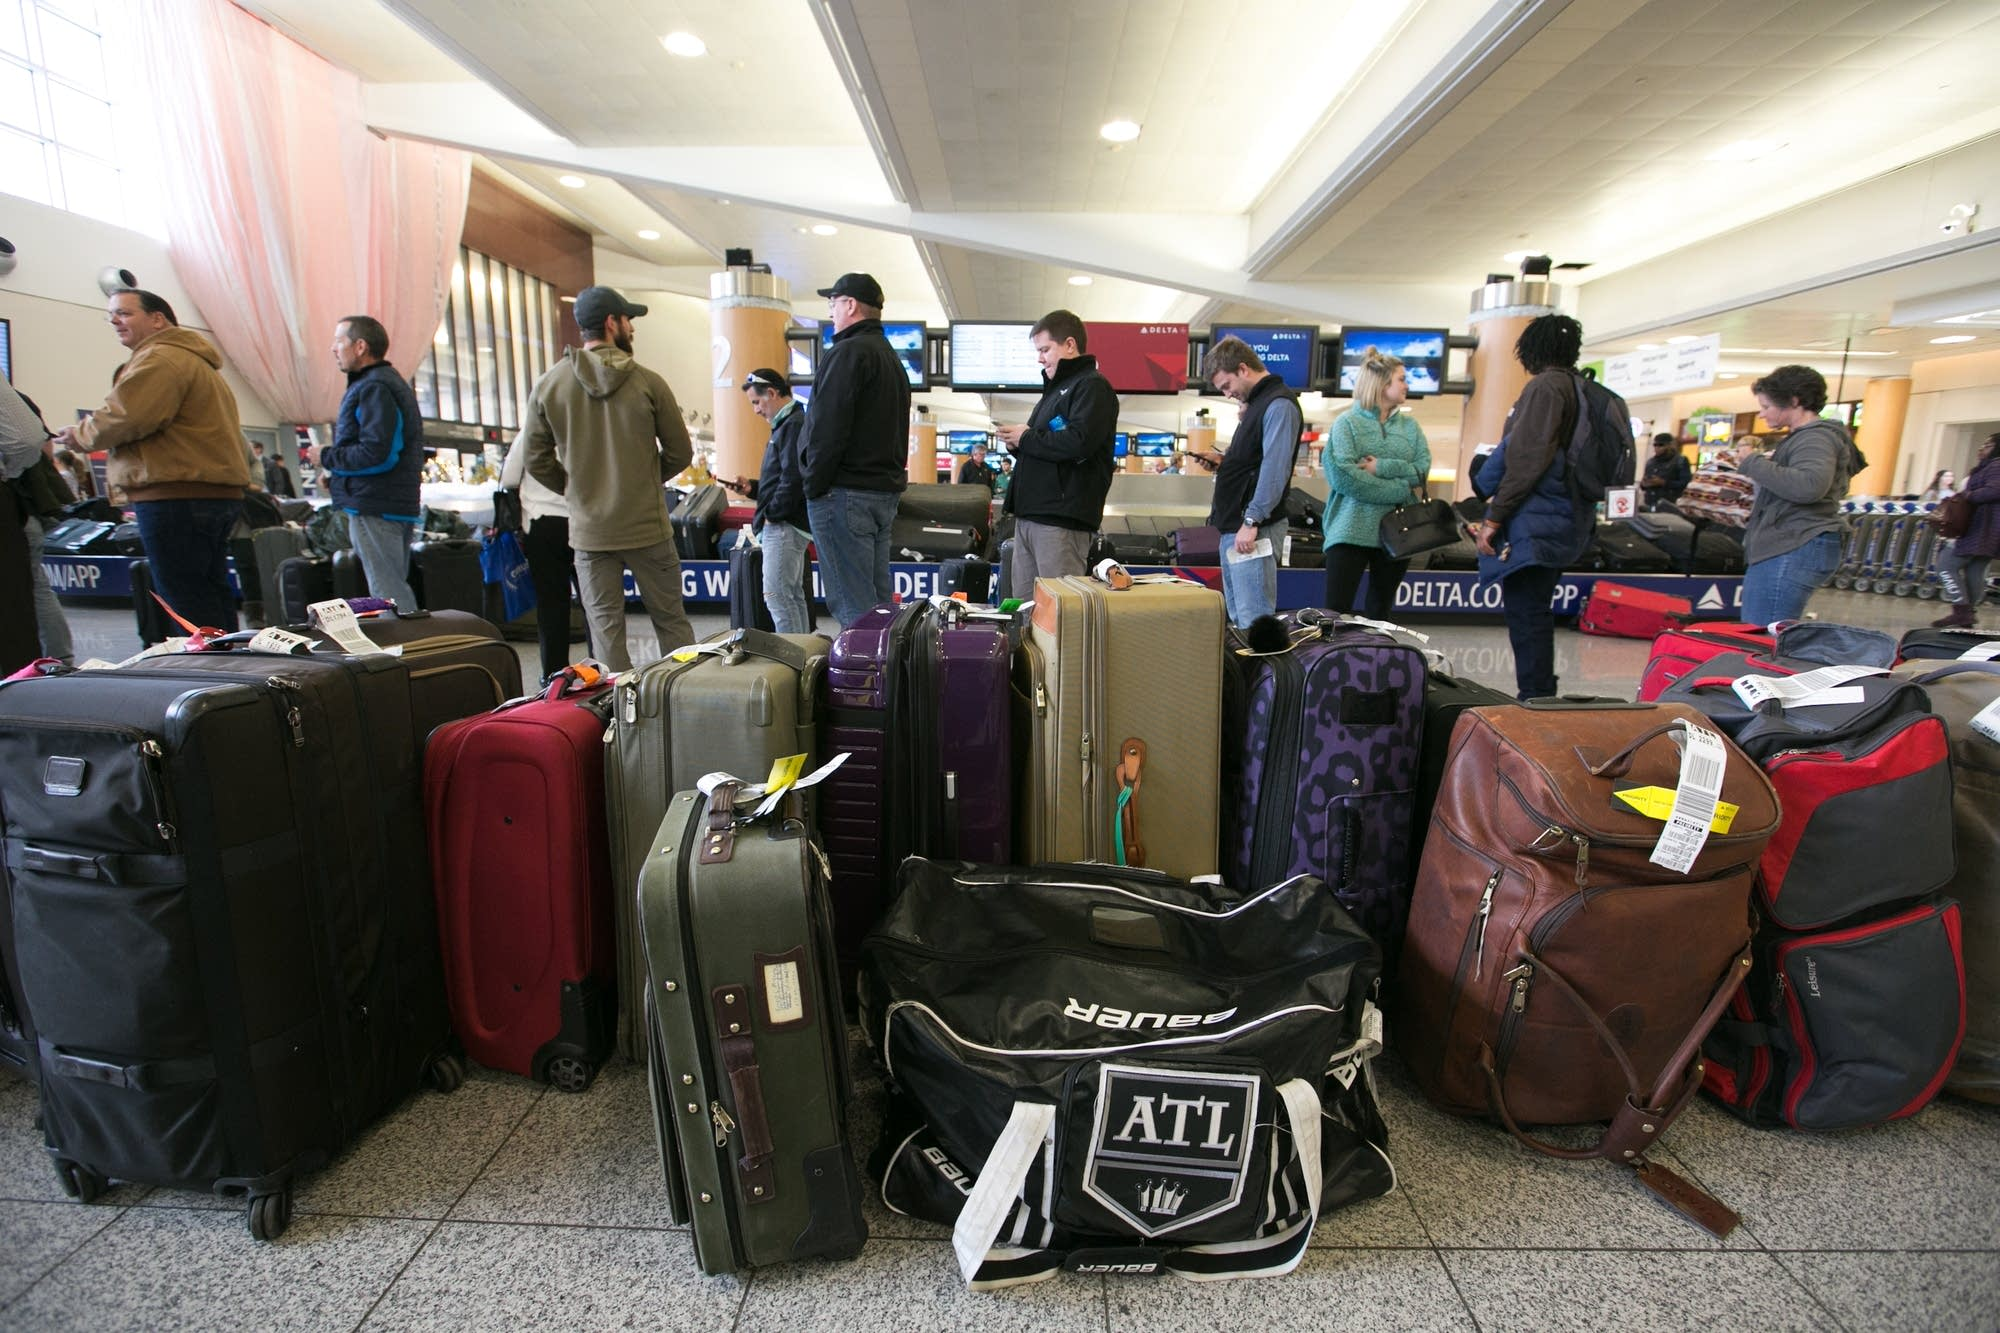 Hundreds of flights canceled after power outage at Atlanta airport.